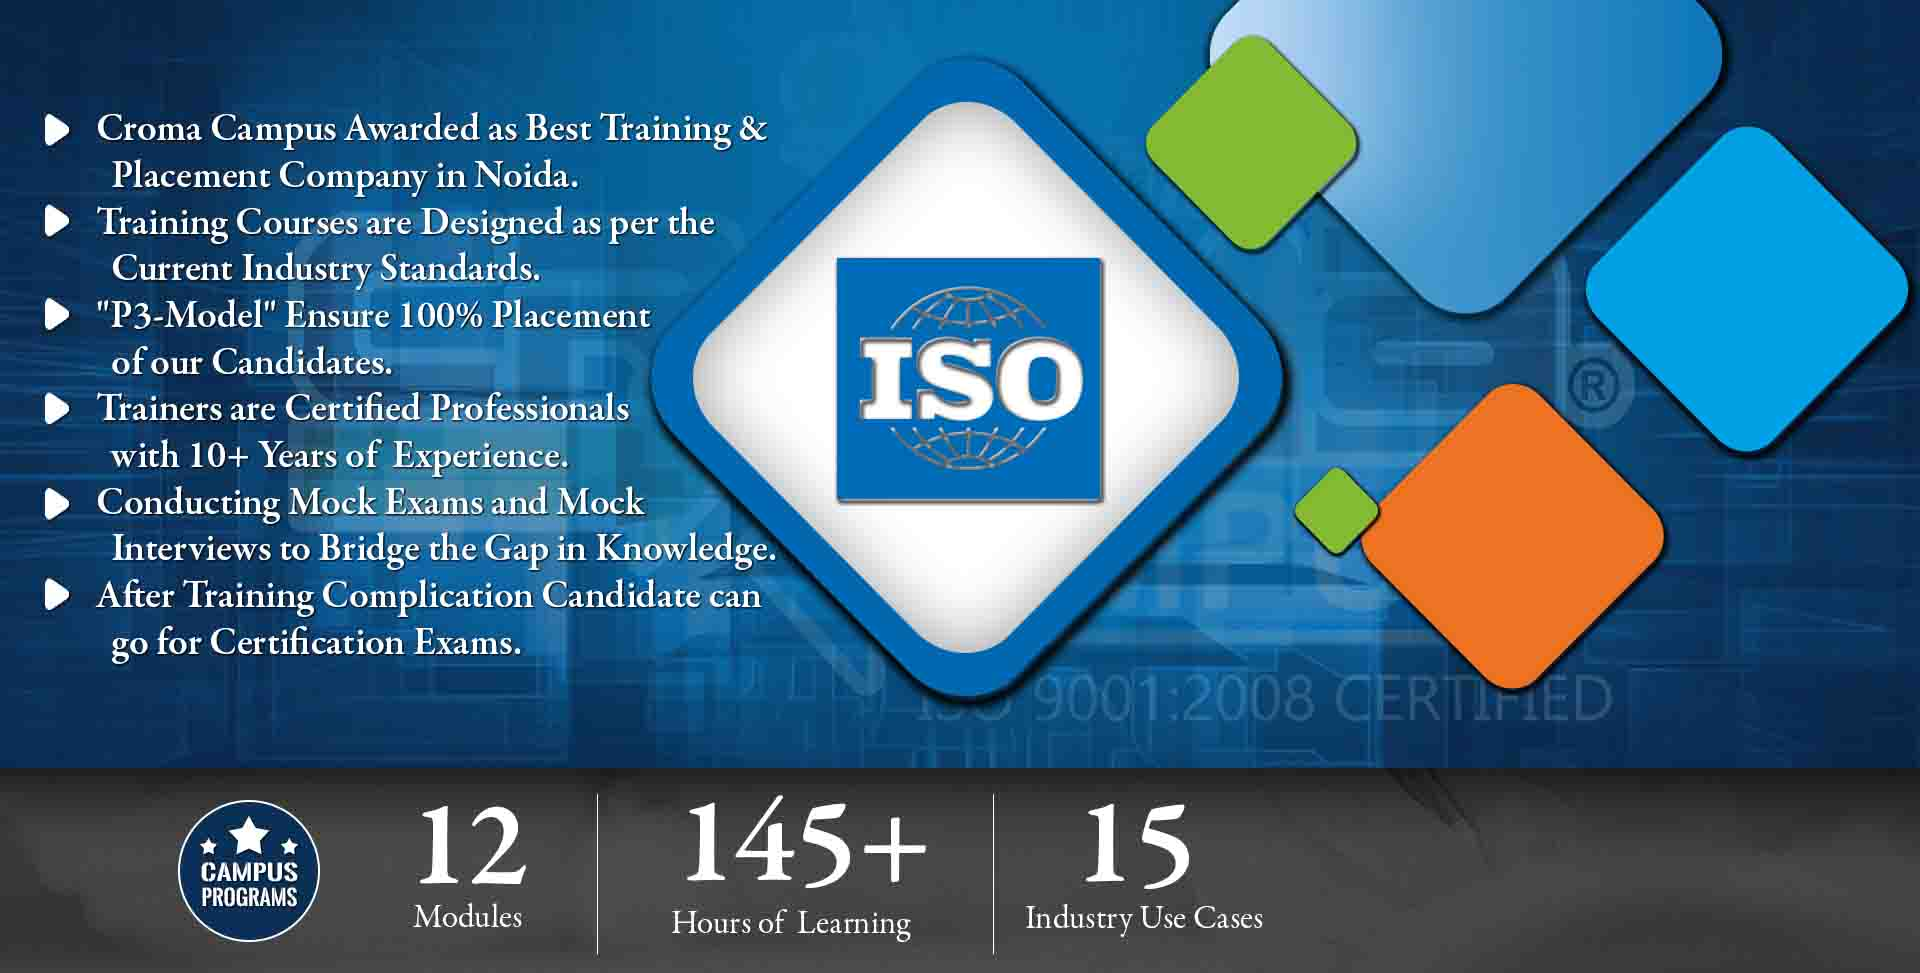 ISO Training in Delhi NCR- Croma Campus